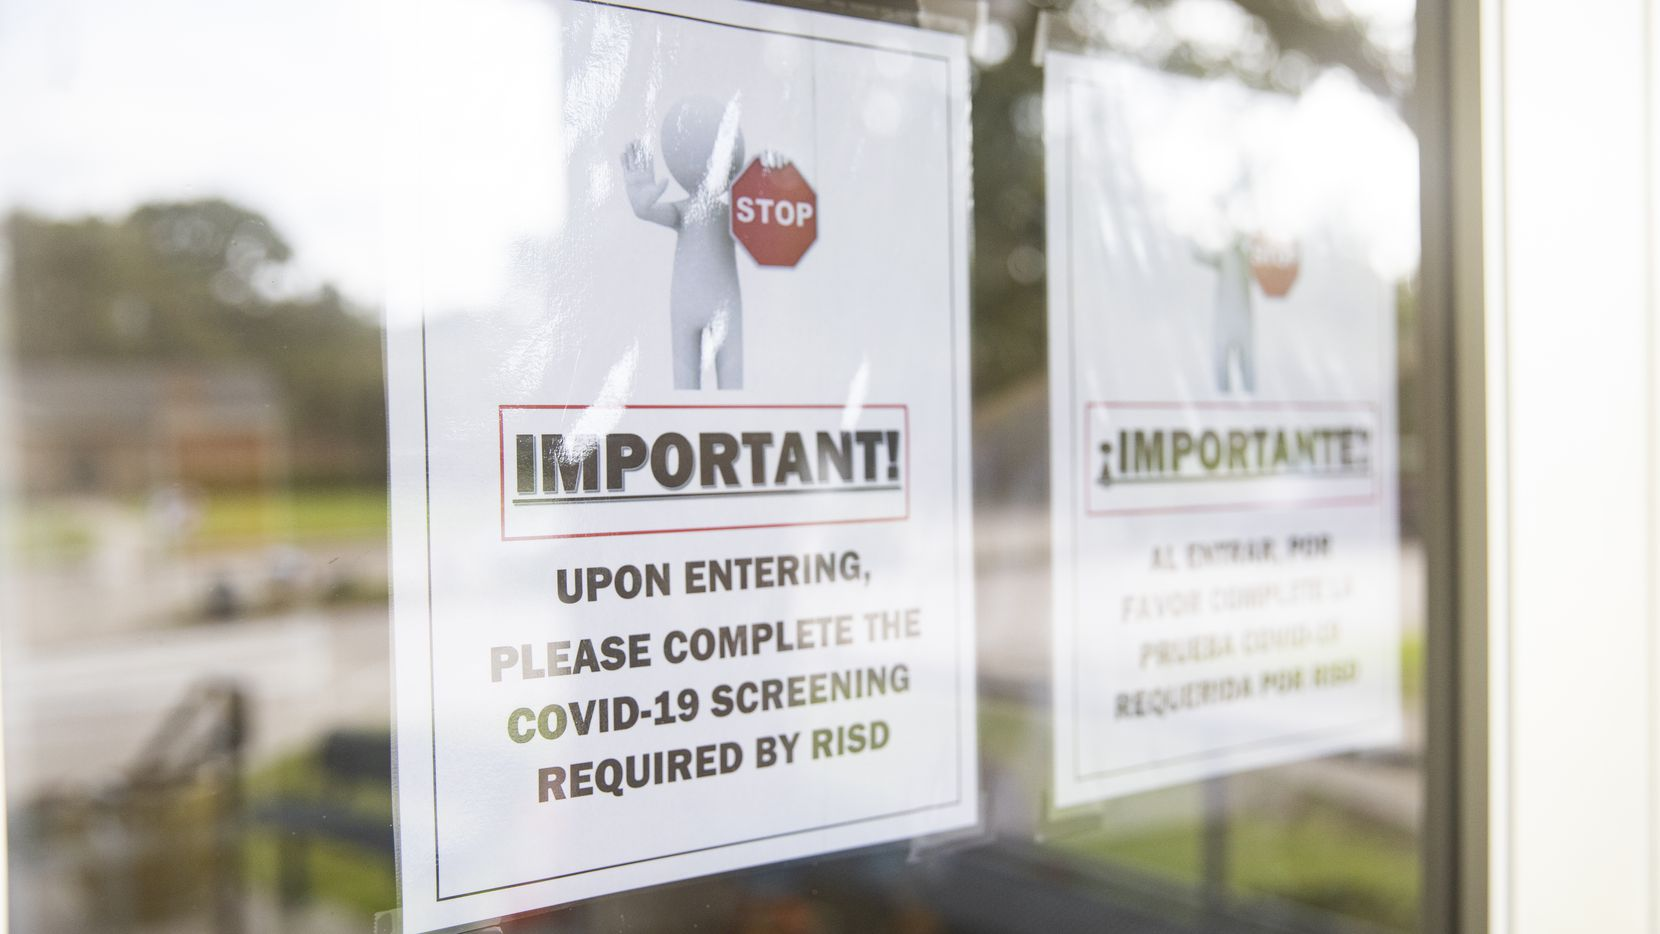 A sign about COVID-19 screening before entering Northwood Hills Elementary on Aug. 31, 2020 in Dallas.